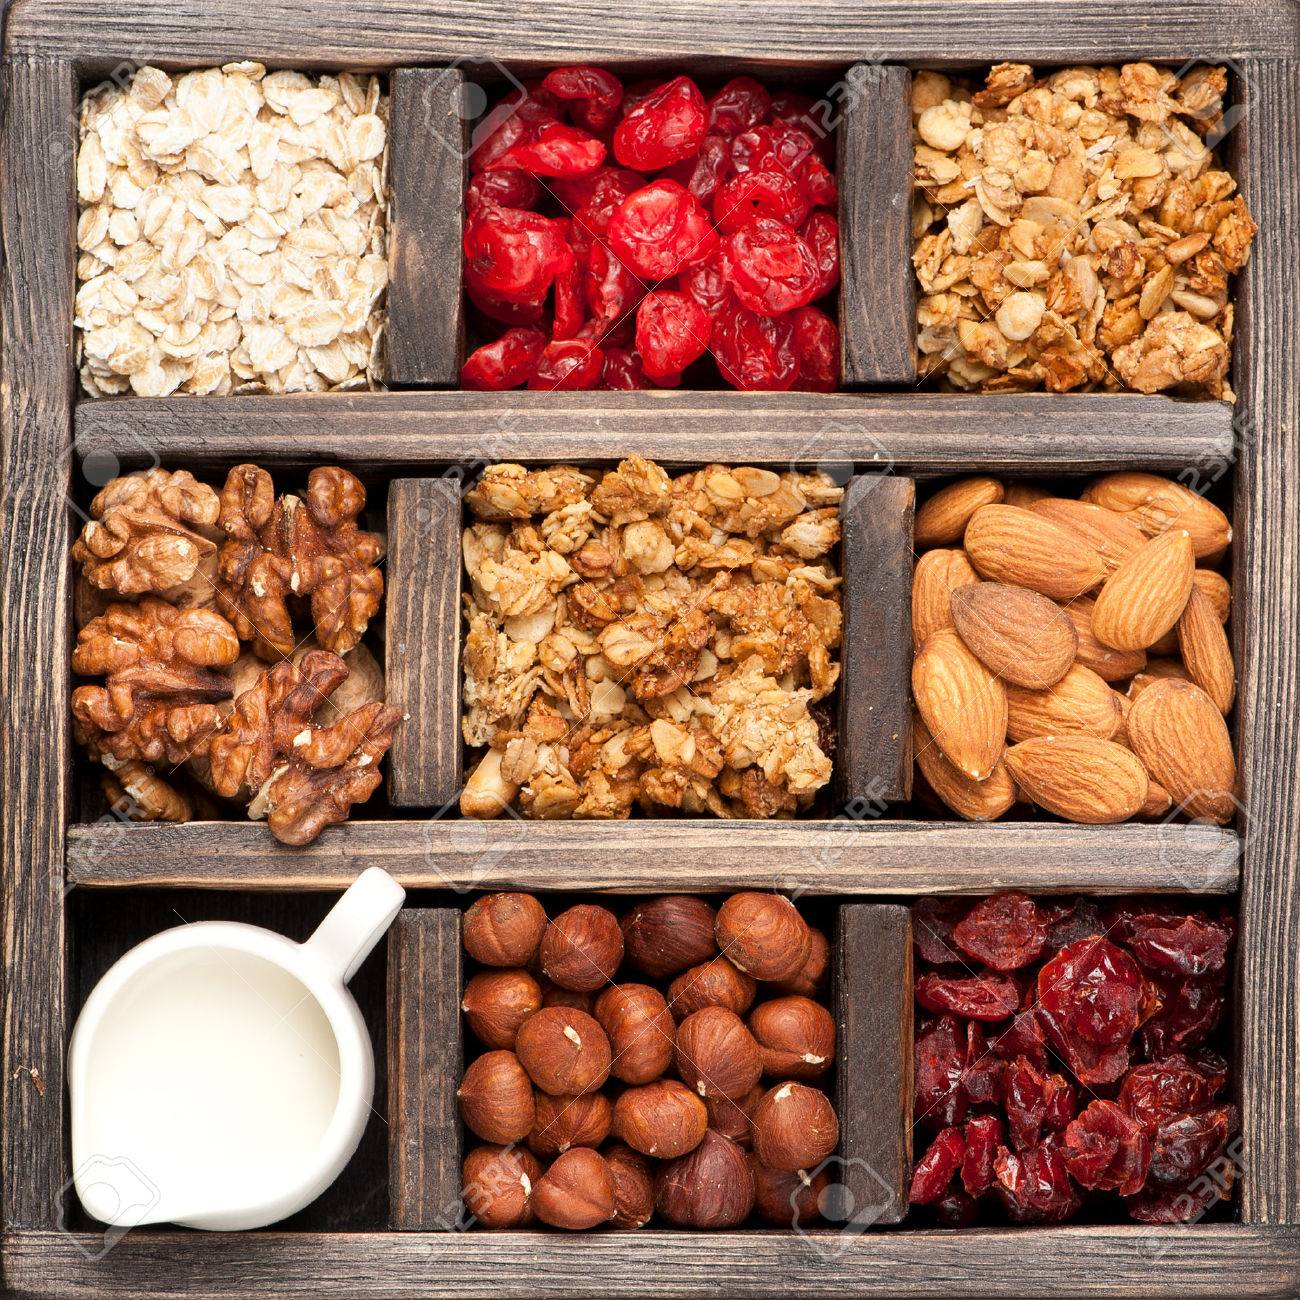 granola, oatmeal, nuts, berries in a wooden box. Top view. Food background - 38347910